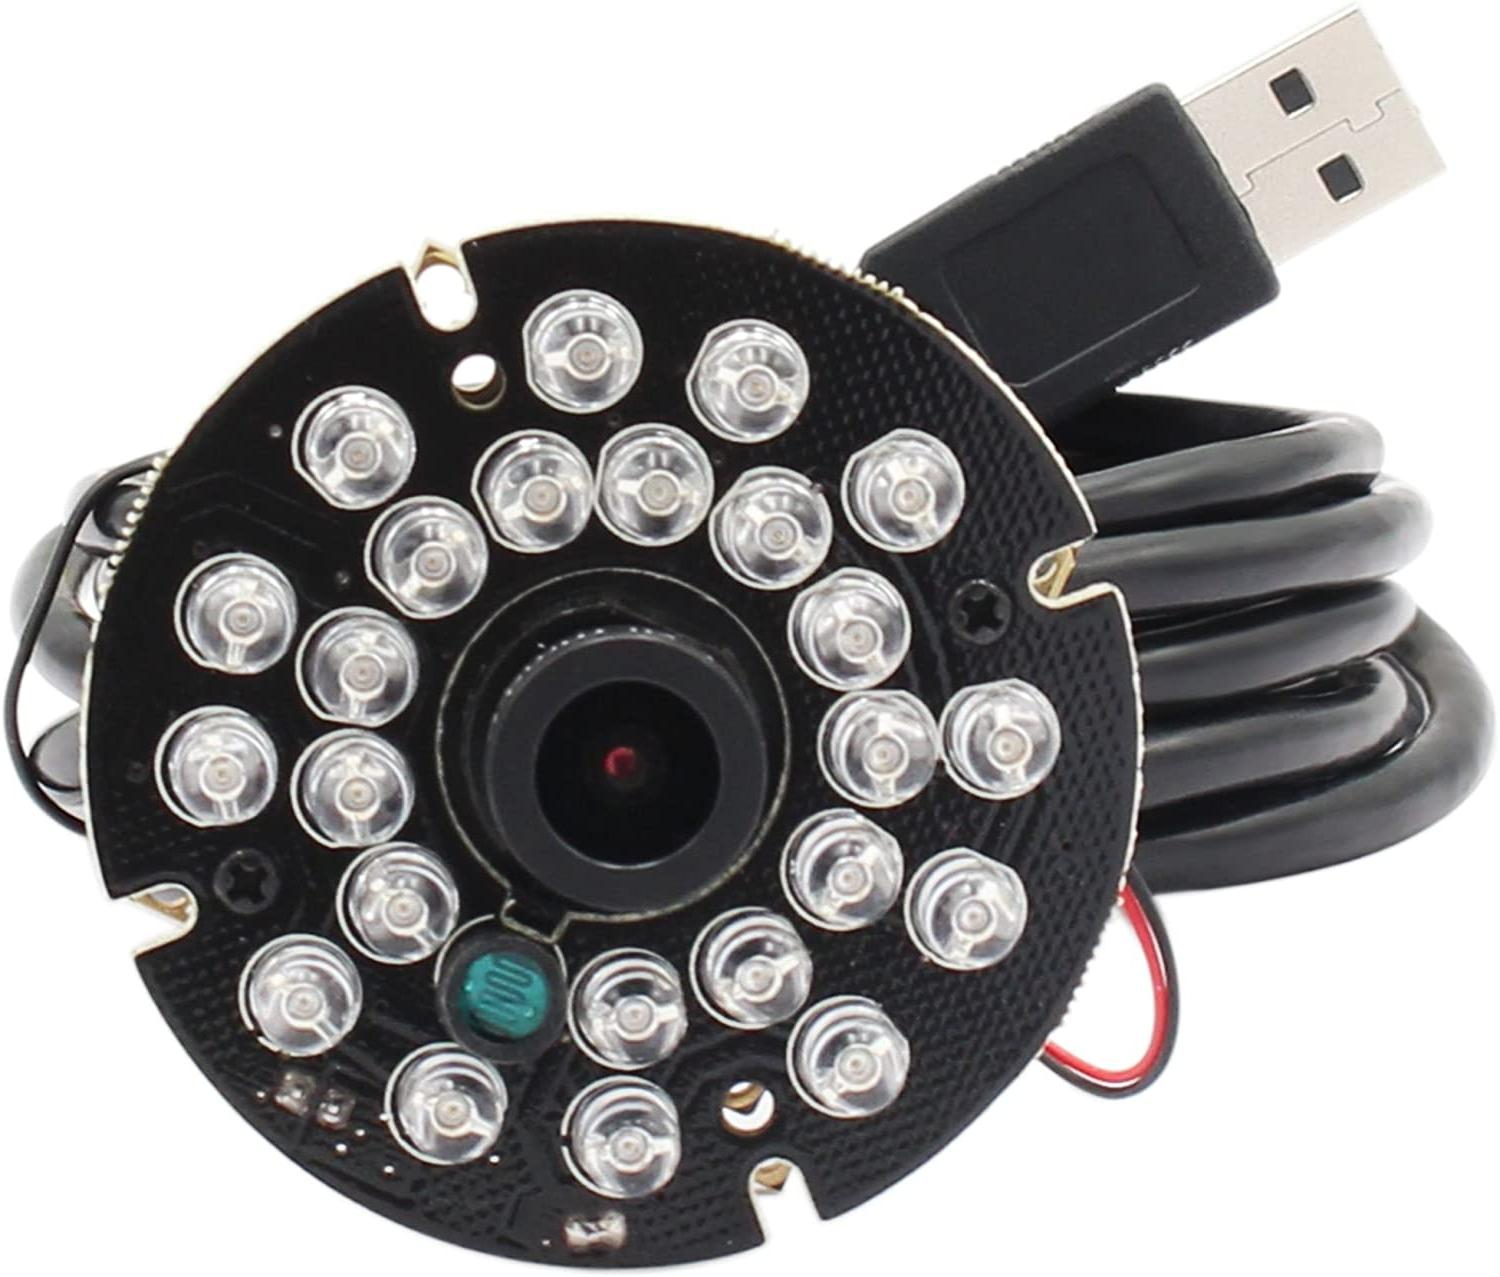 2 8mm wide angle ir led infrared